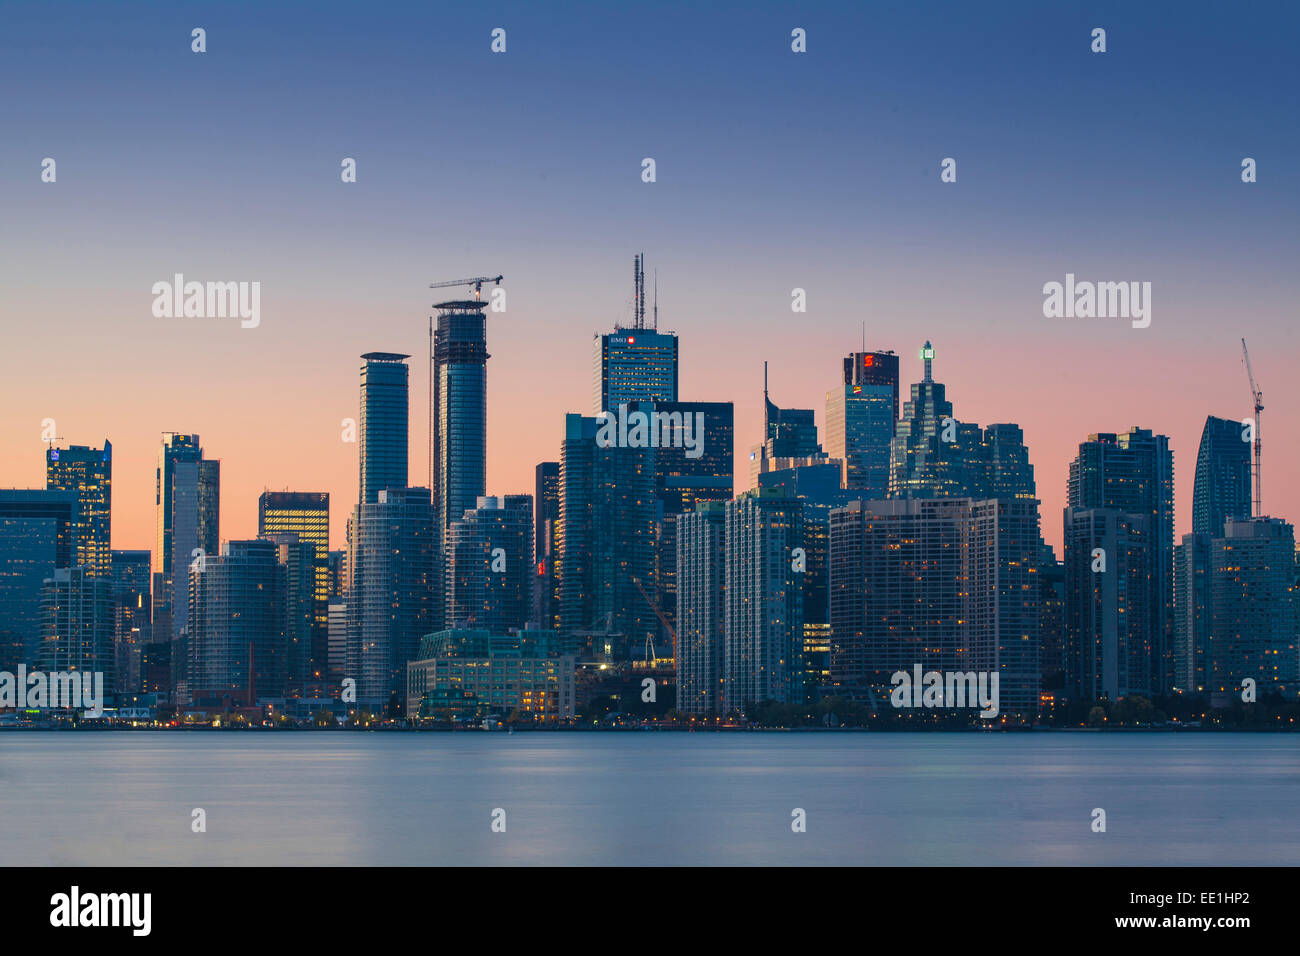 View of city skyline, Toronto, Ontario, Canada, North America - Stock Image